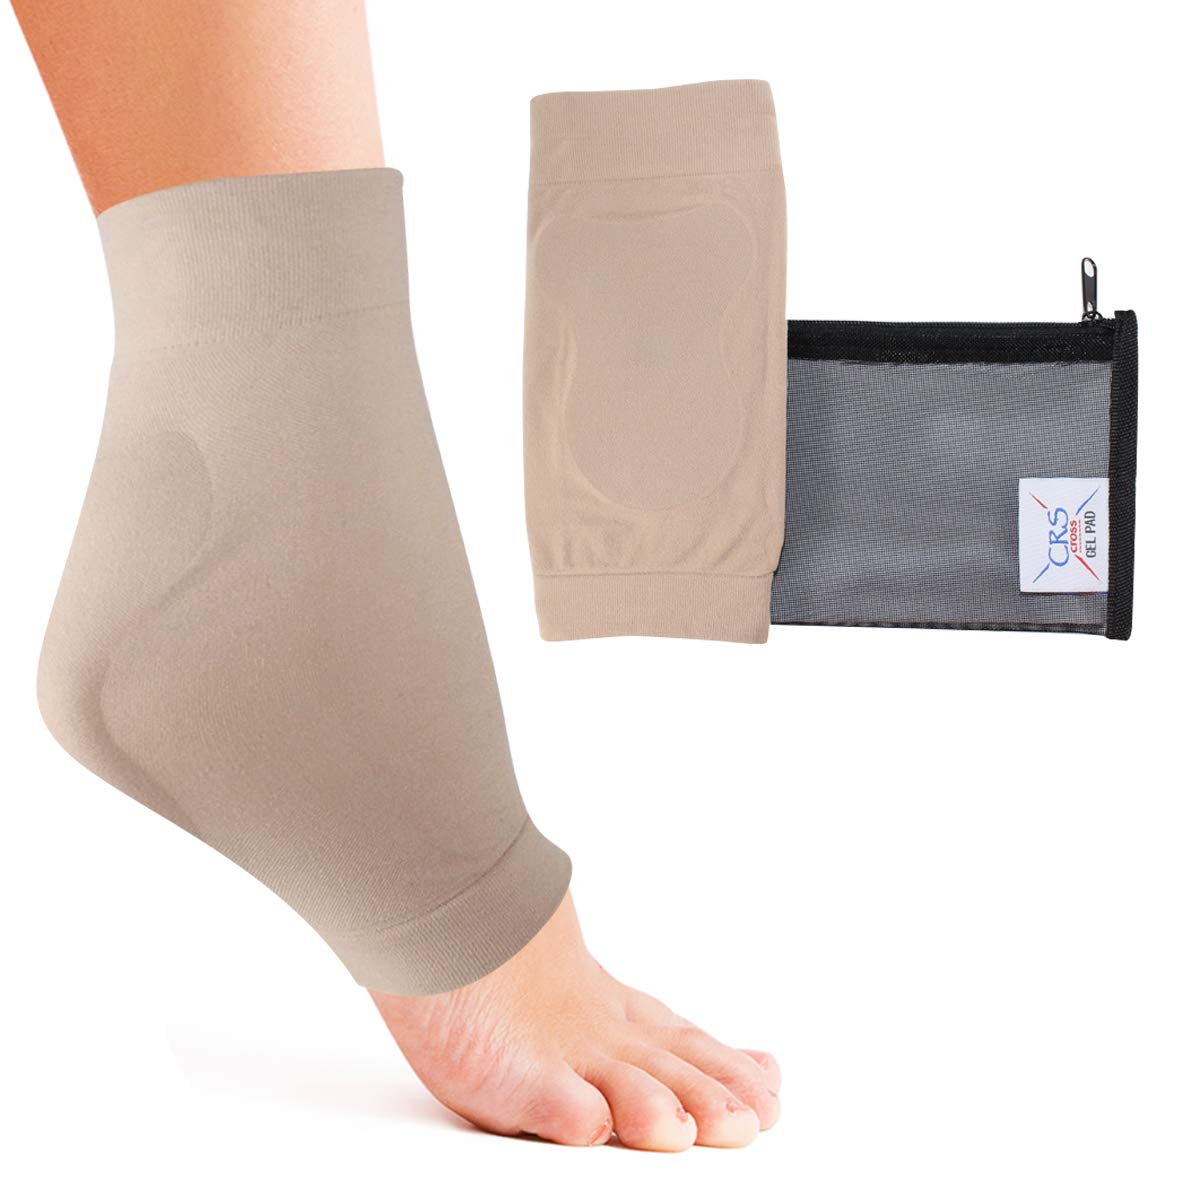 b14eff1bec CRS Cross Achilles Heel Sleeve - Padded compression gel sleeve/sock for  cushion & protection of Haglunds bump, tendonitis, and bursitis (2 sleeves  with bag)